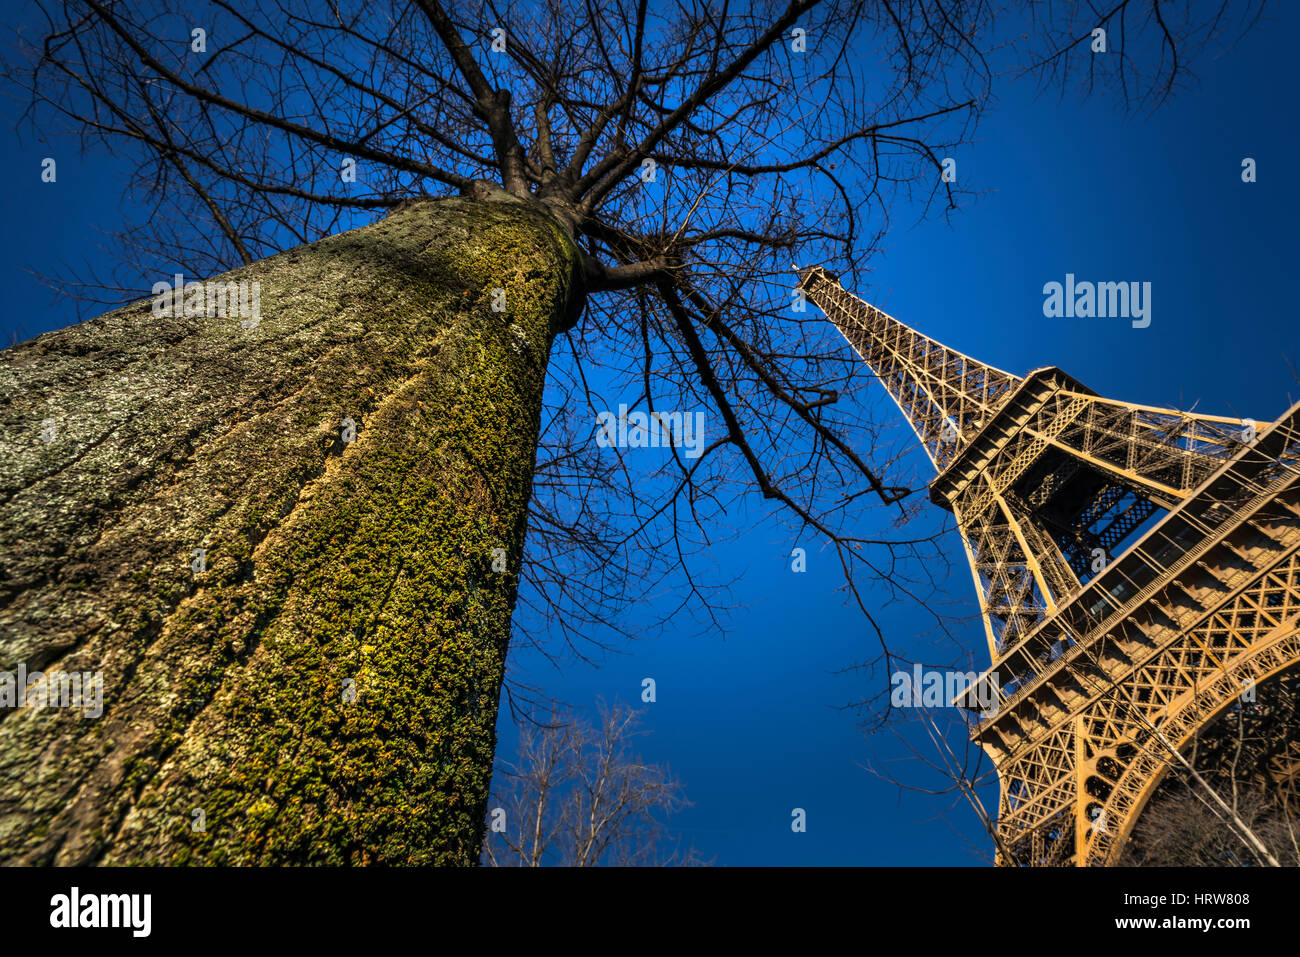 Eiffel and big Tree - Stock Image